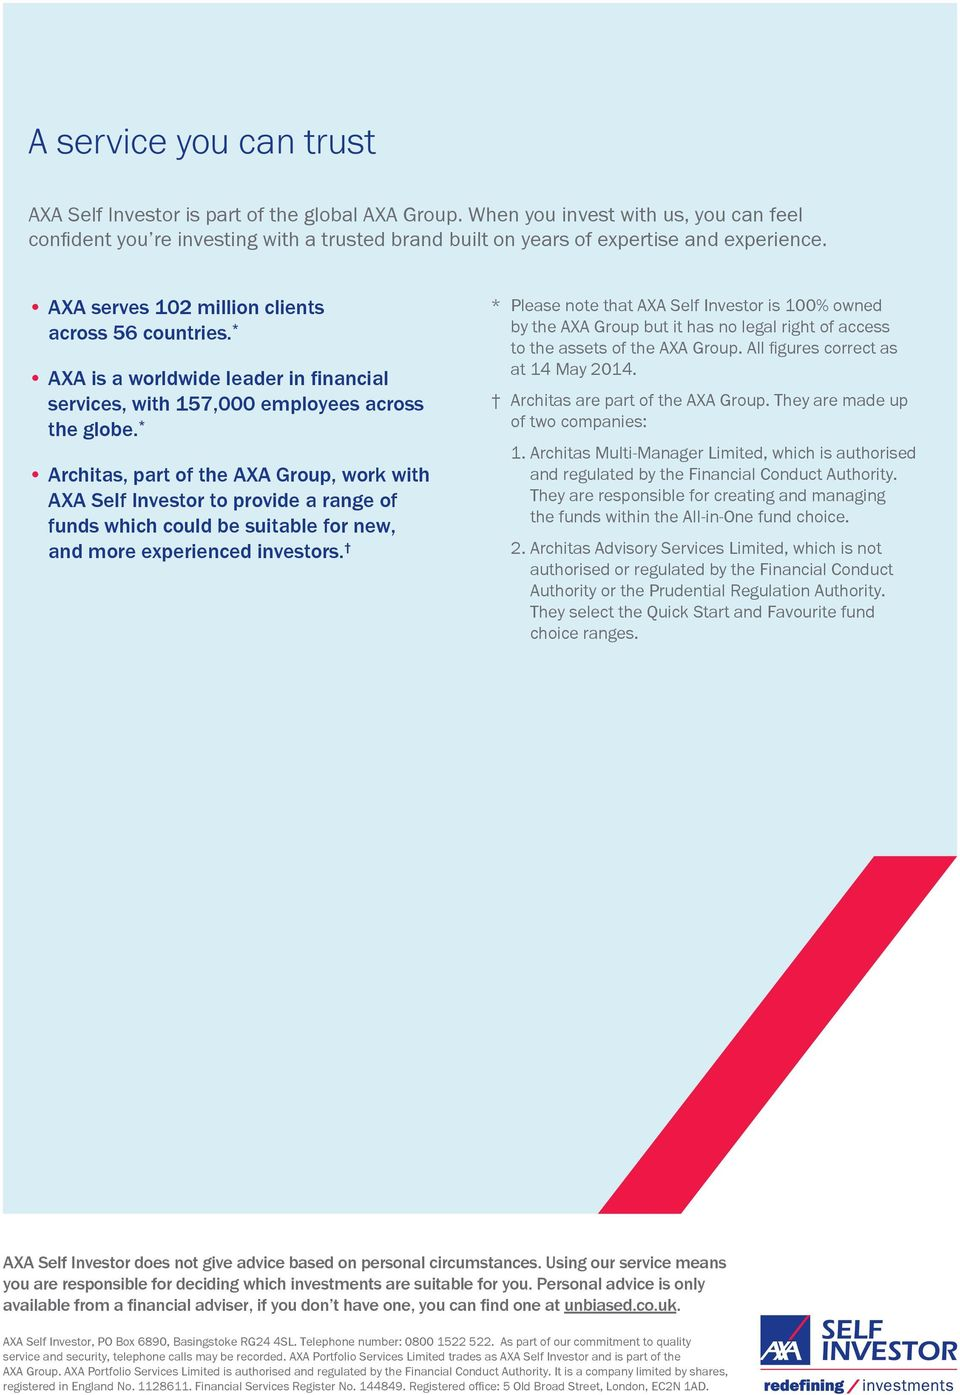 * AXA is a worldwide leader in financial services, with 157,000 employees across the globe.